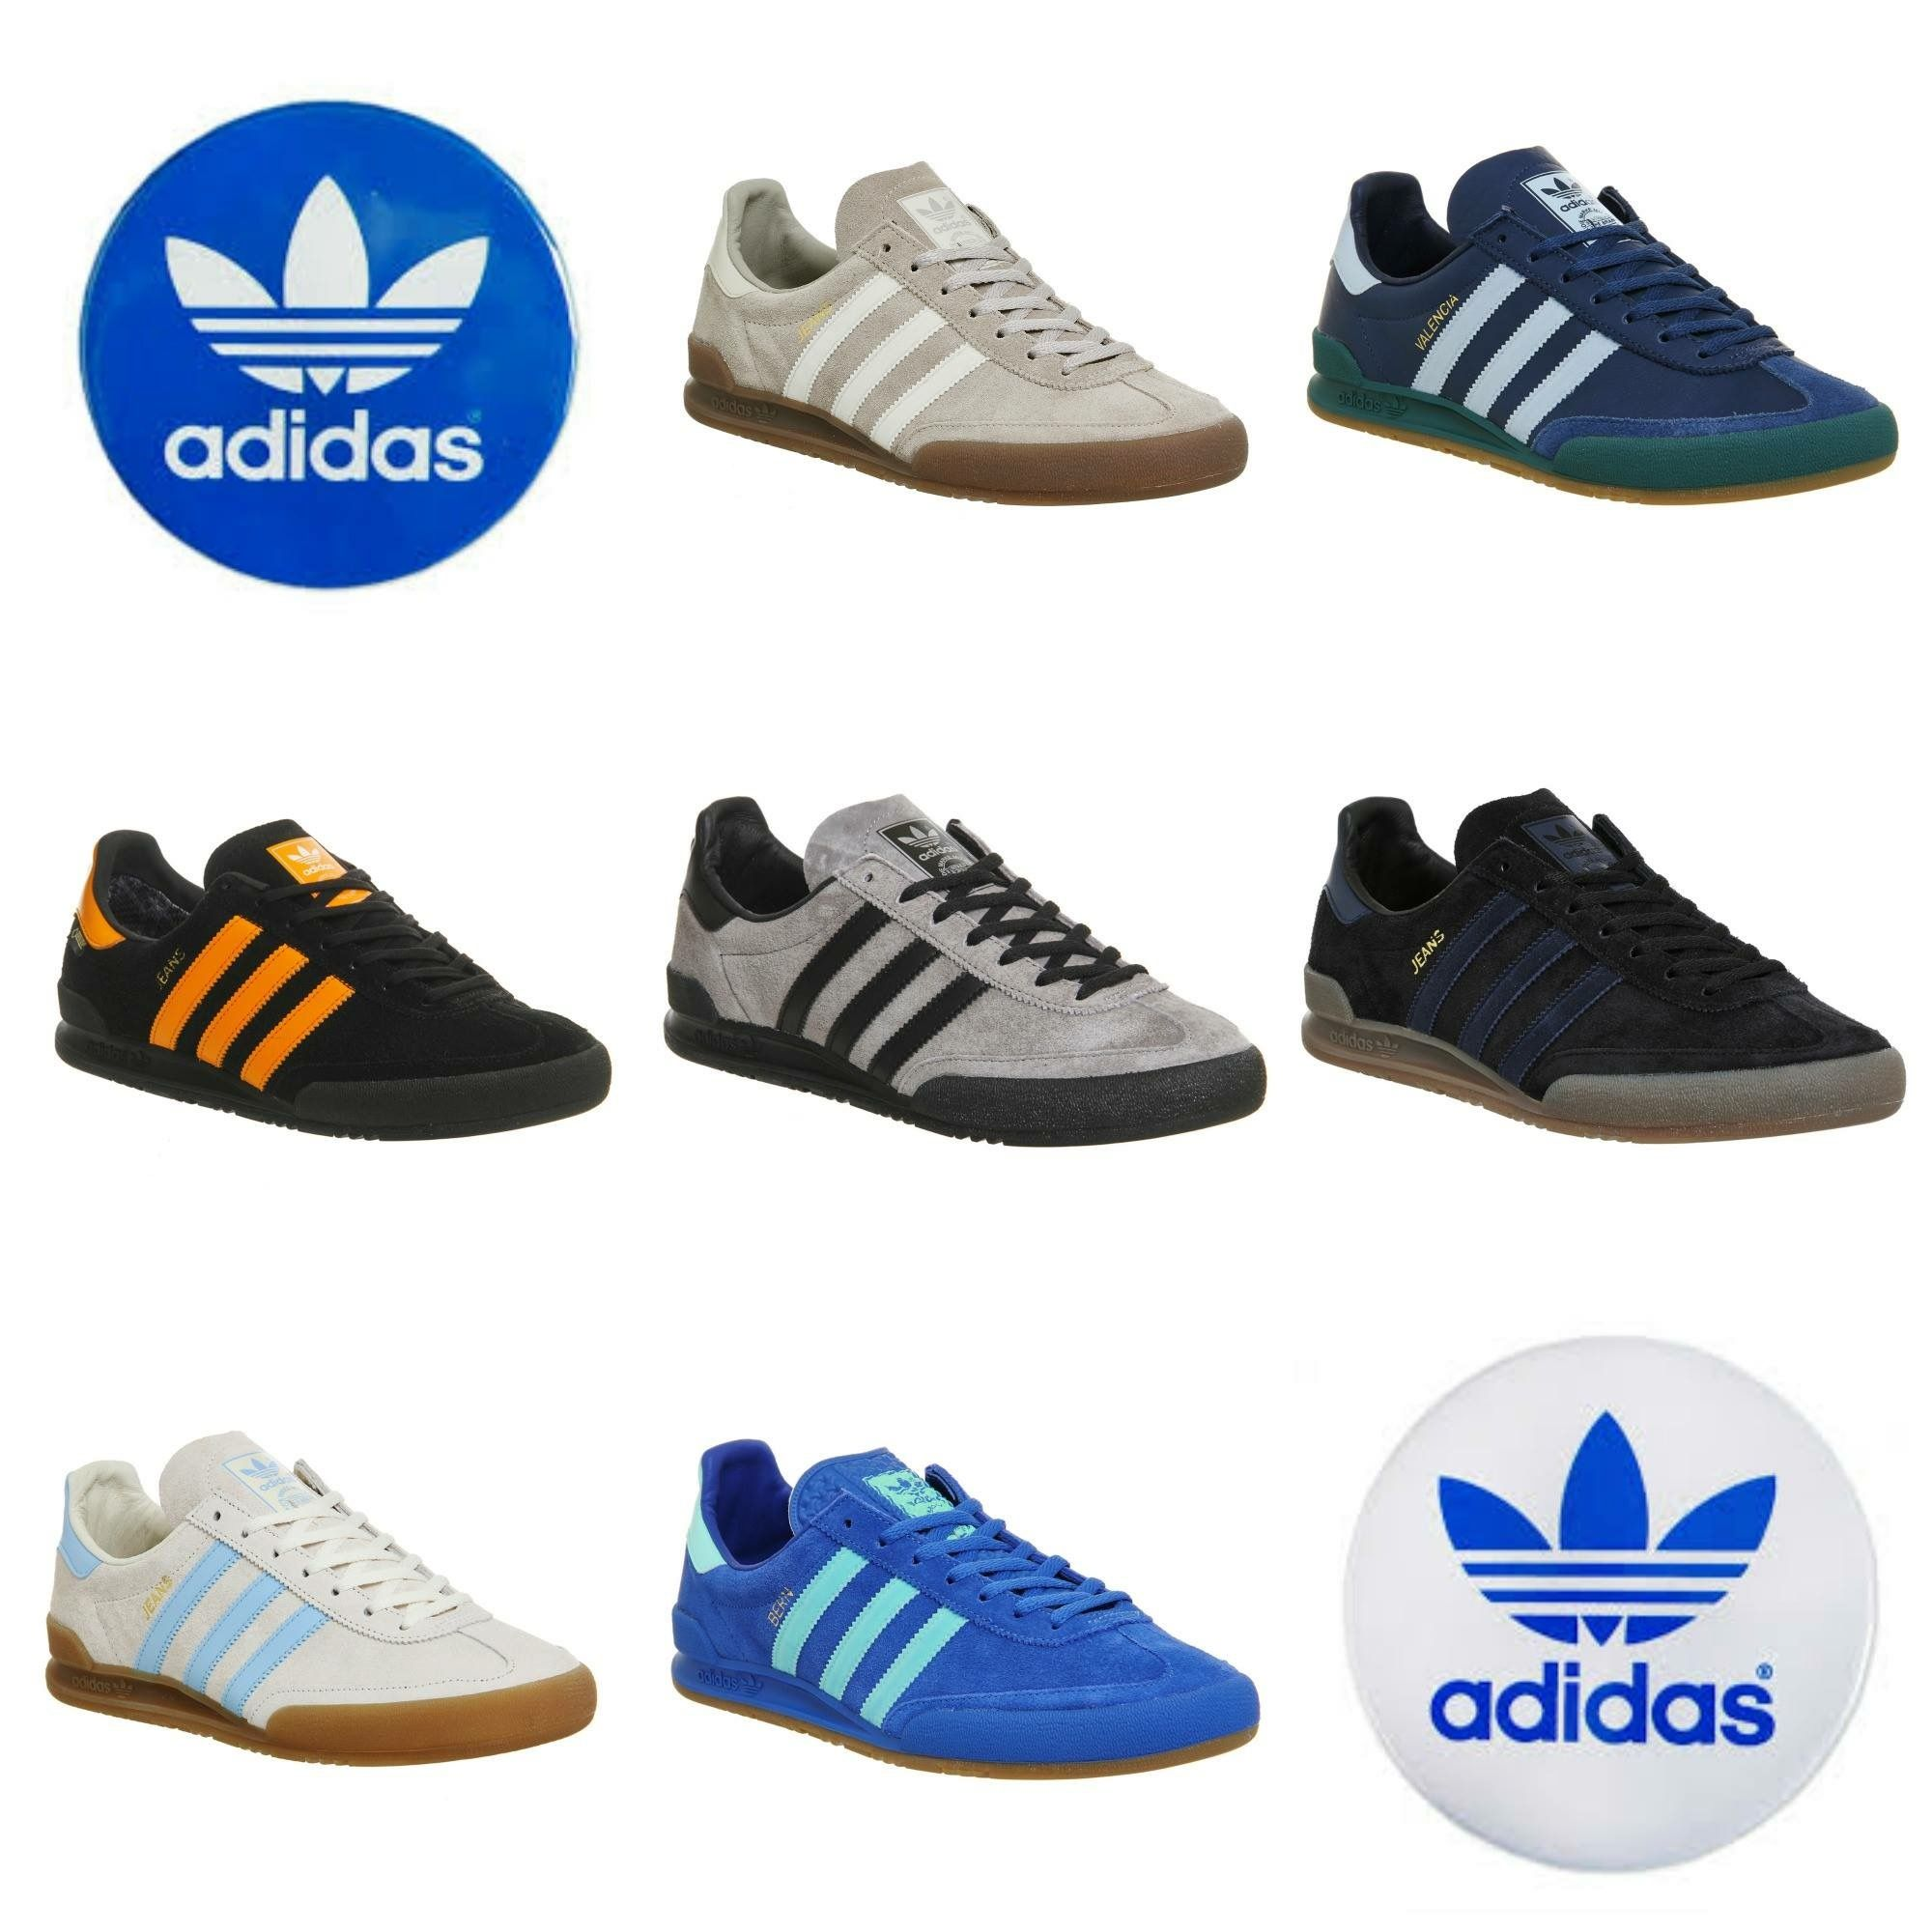 new style 78cbb 55b54 .zp --- pinterest.comProjectBlowed Adidas Casual Shoes, Adidas Sneakers